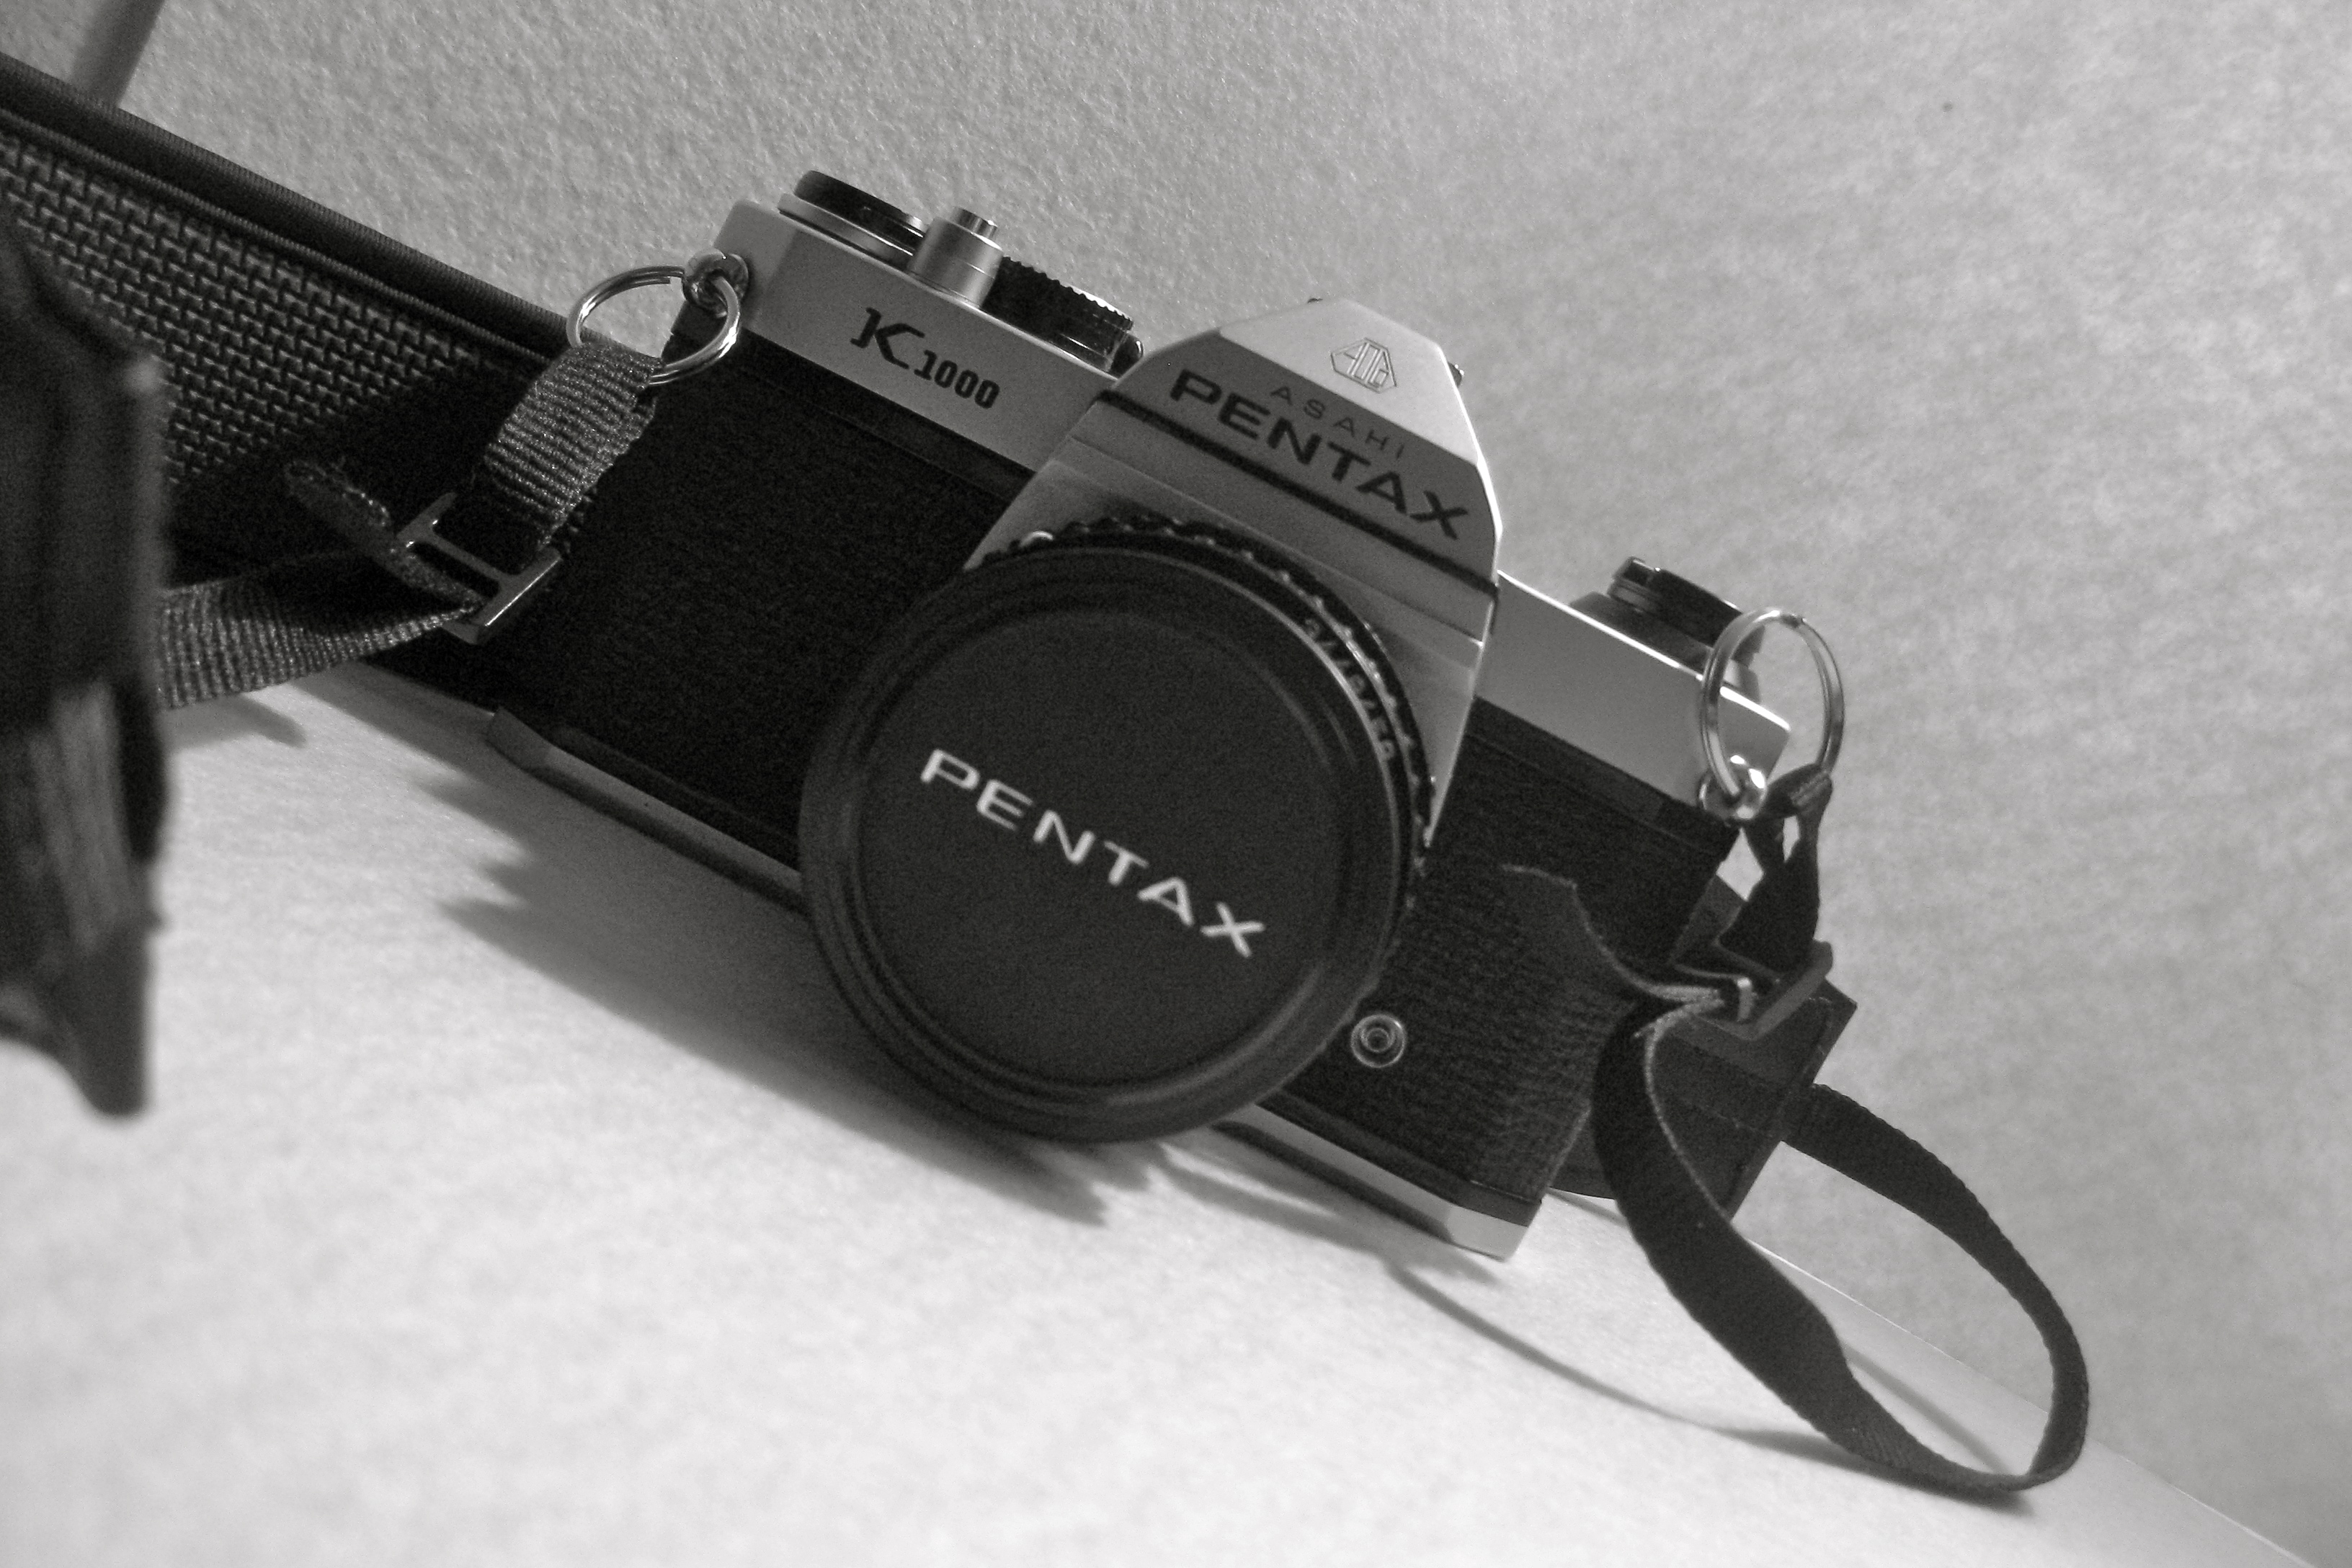 Camera My First Dslr Camera the race to my first dslr camera downshannonlane not surprisingly interest in photography has turned from mild obsessed last may when dad gave me his old pentax k1000 i couldnt wai